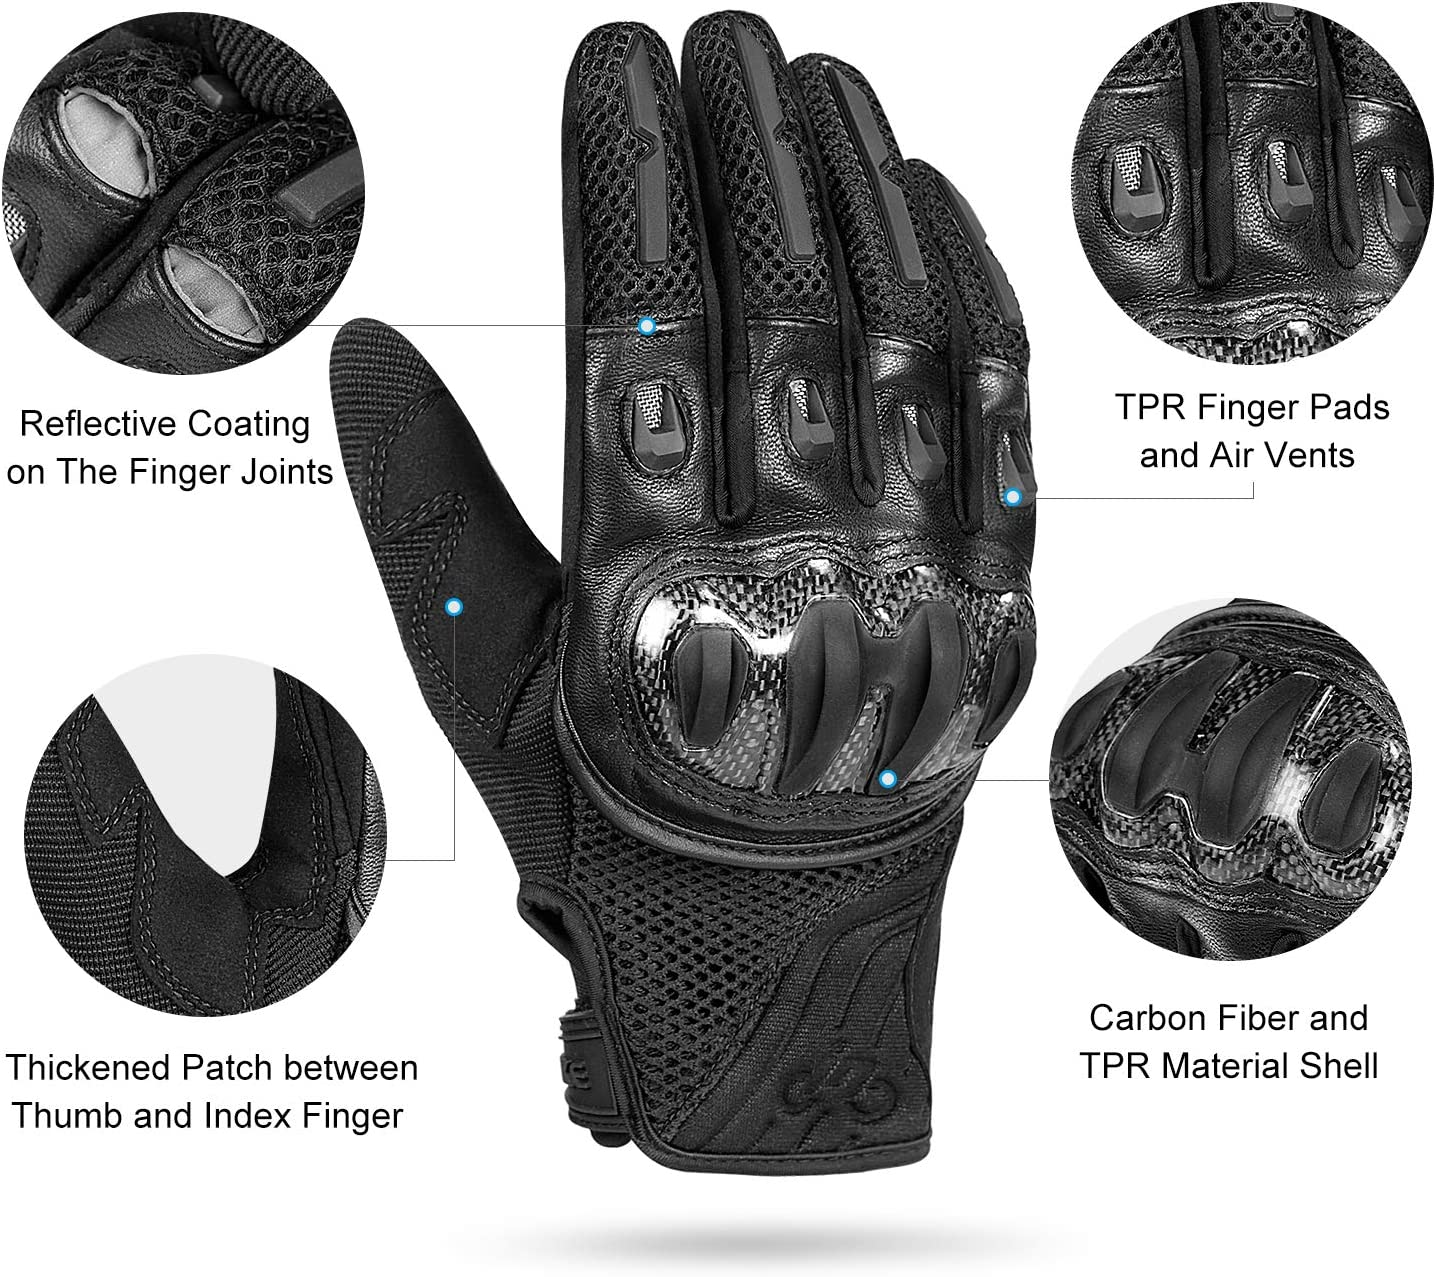 INBIKE Protective Motorcycle Riding Gloves for Men Carbon Fiber Touch Screen Joint Support TPR Finger Pads Black X-Large